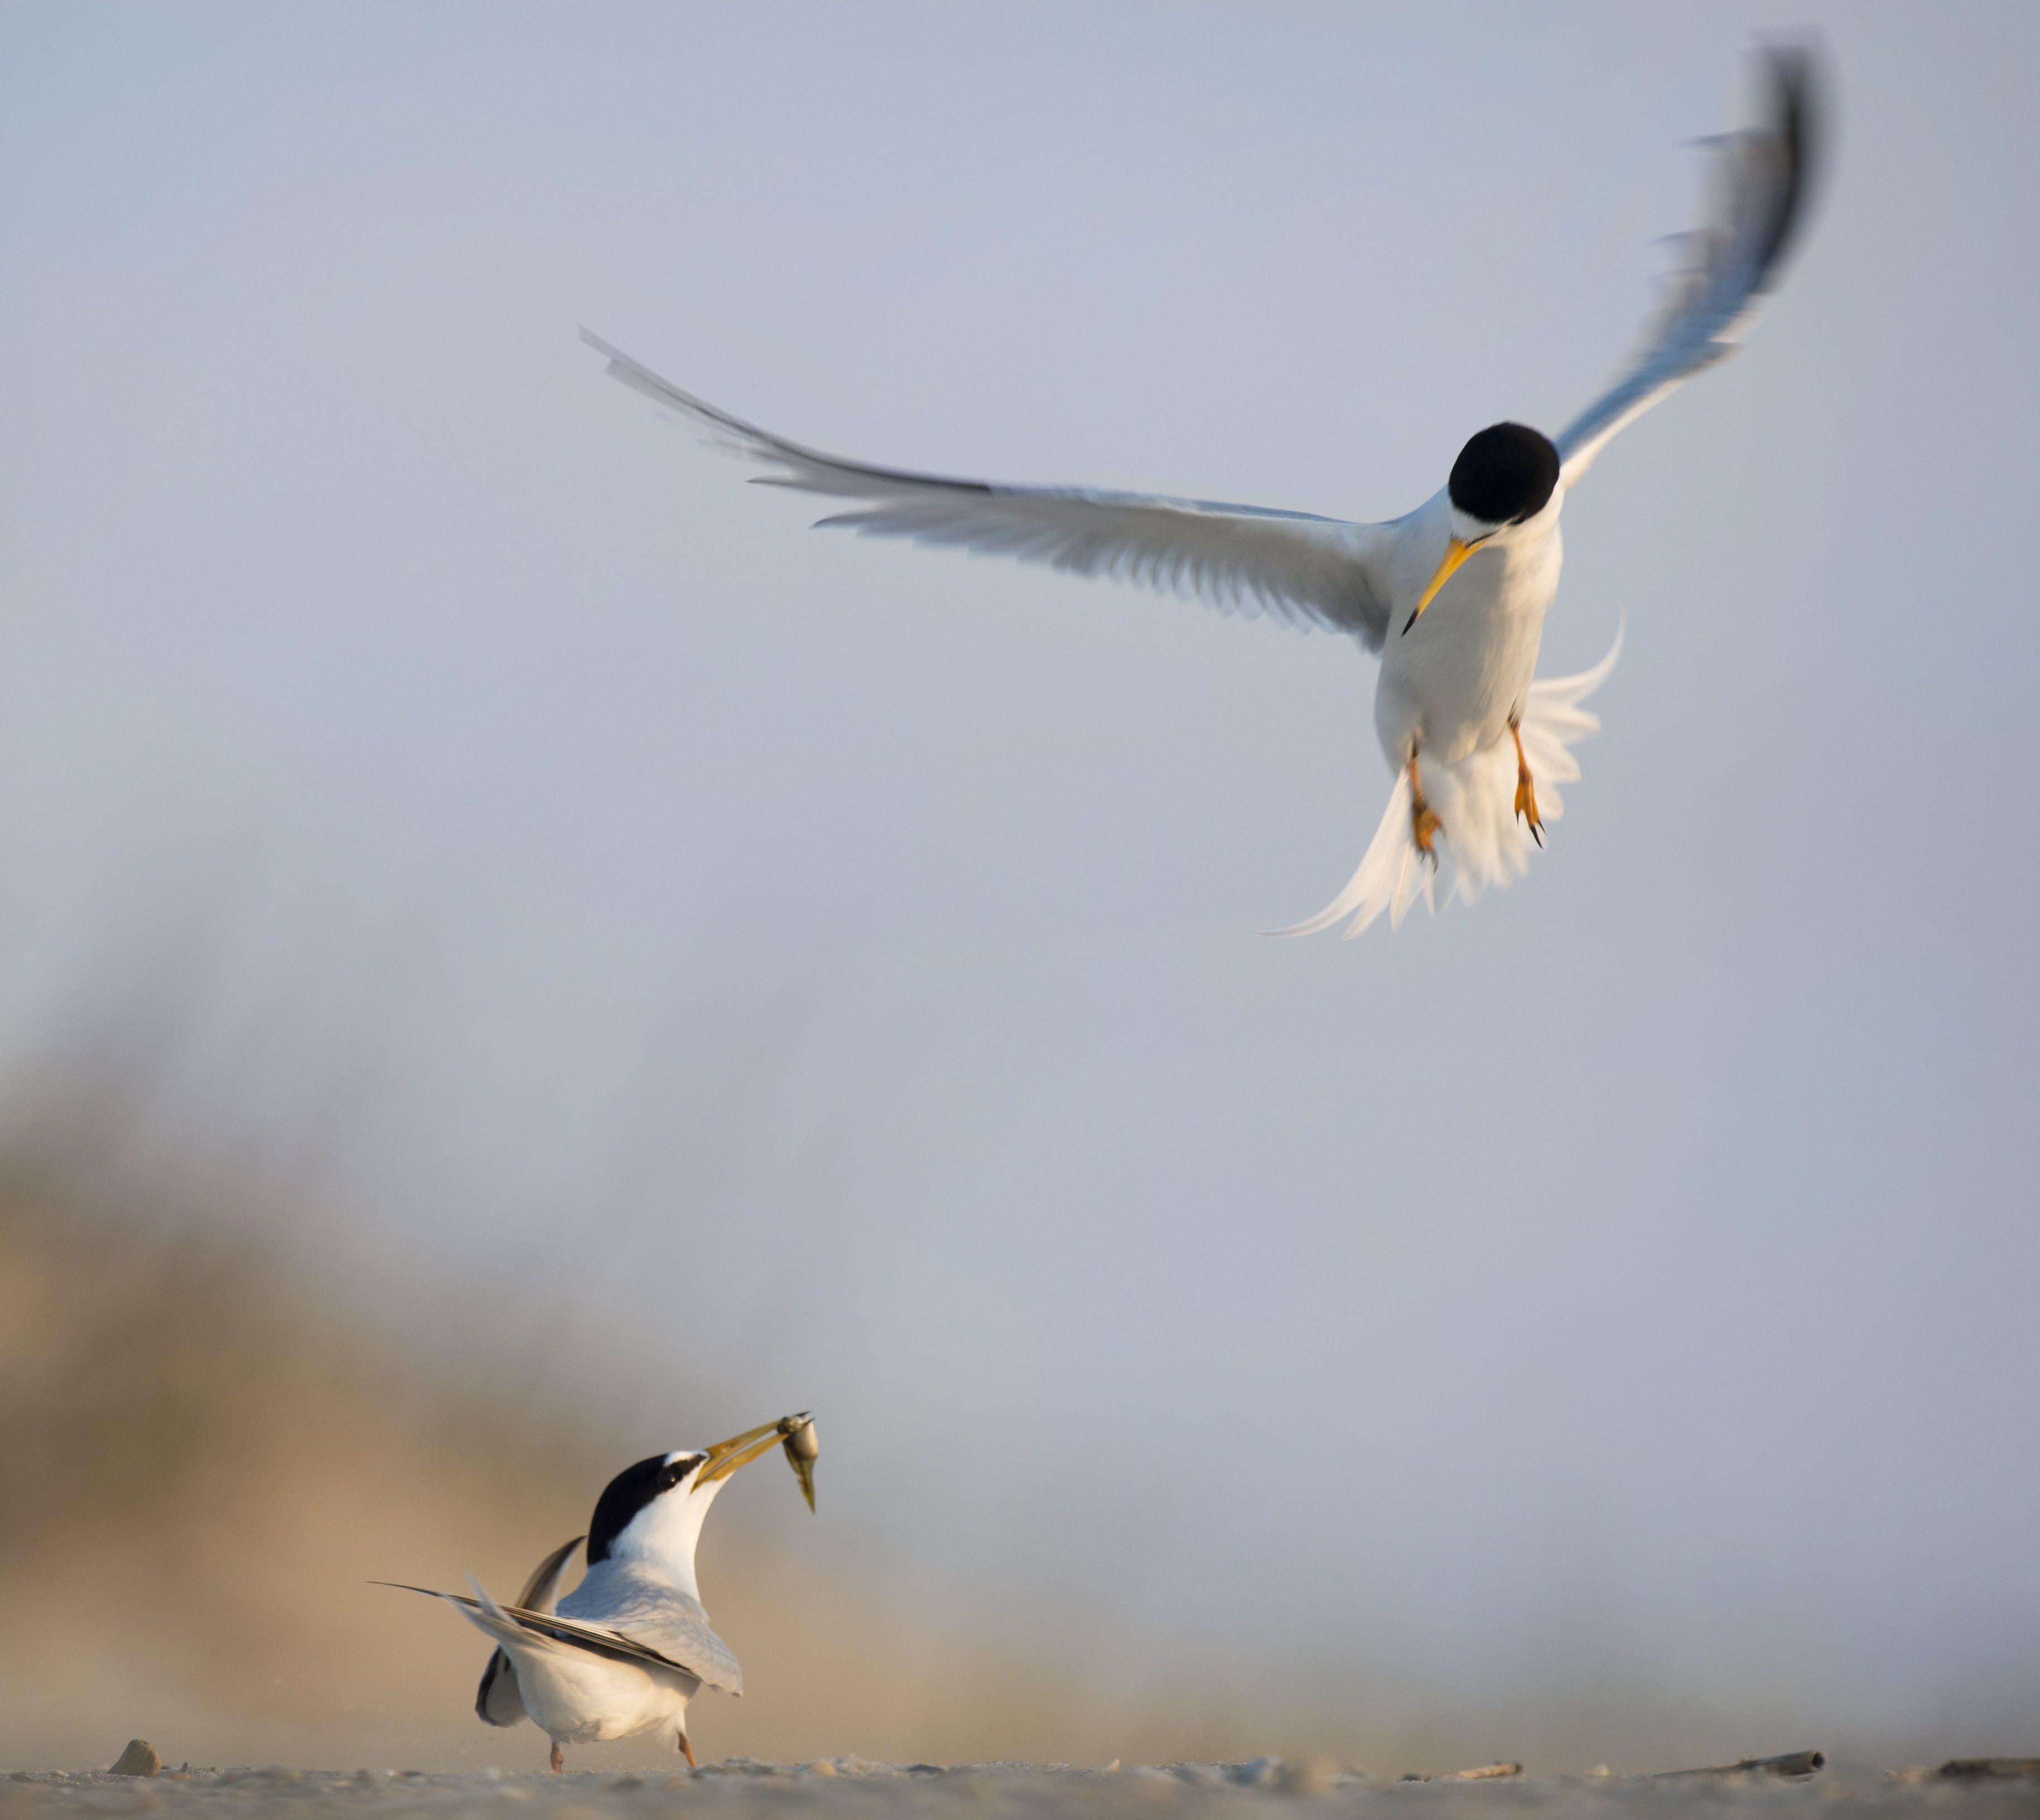 Two adult least terns in courtship ritual.